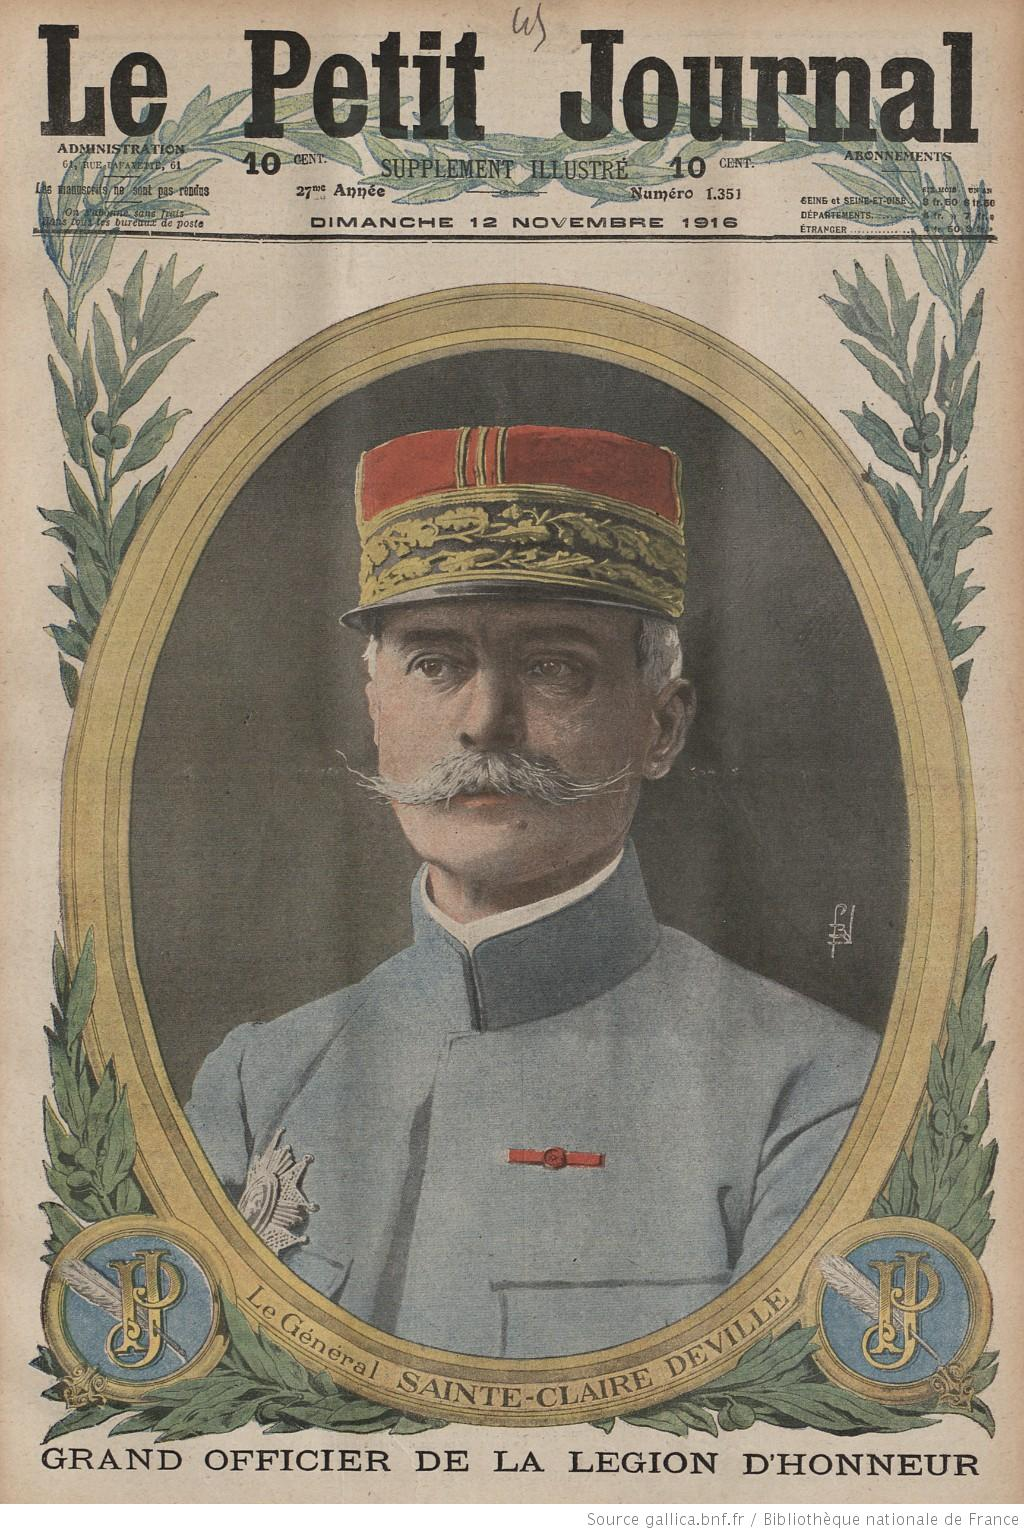 LPJ Illustre 1916-11-12 A.jpg